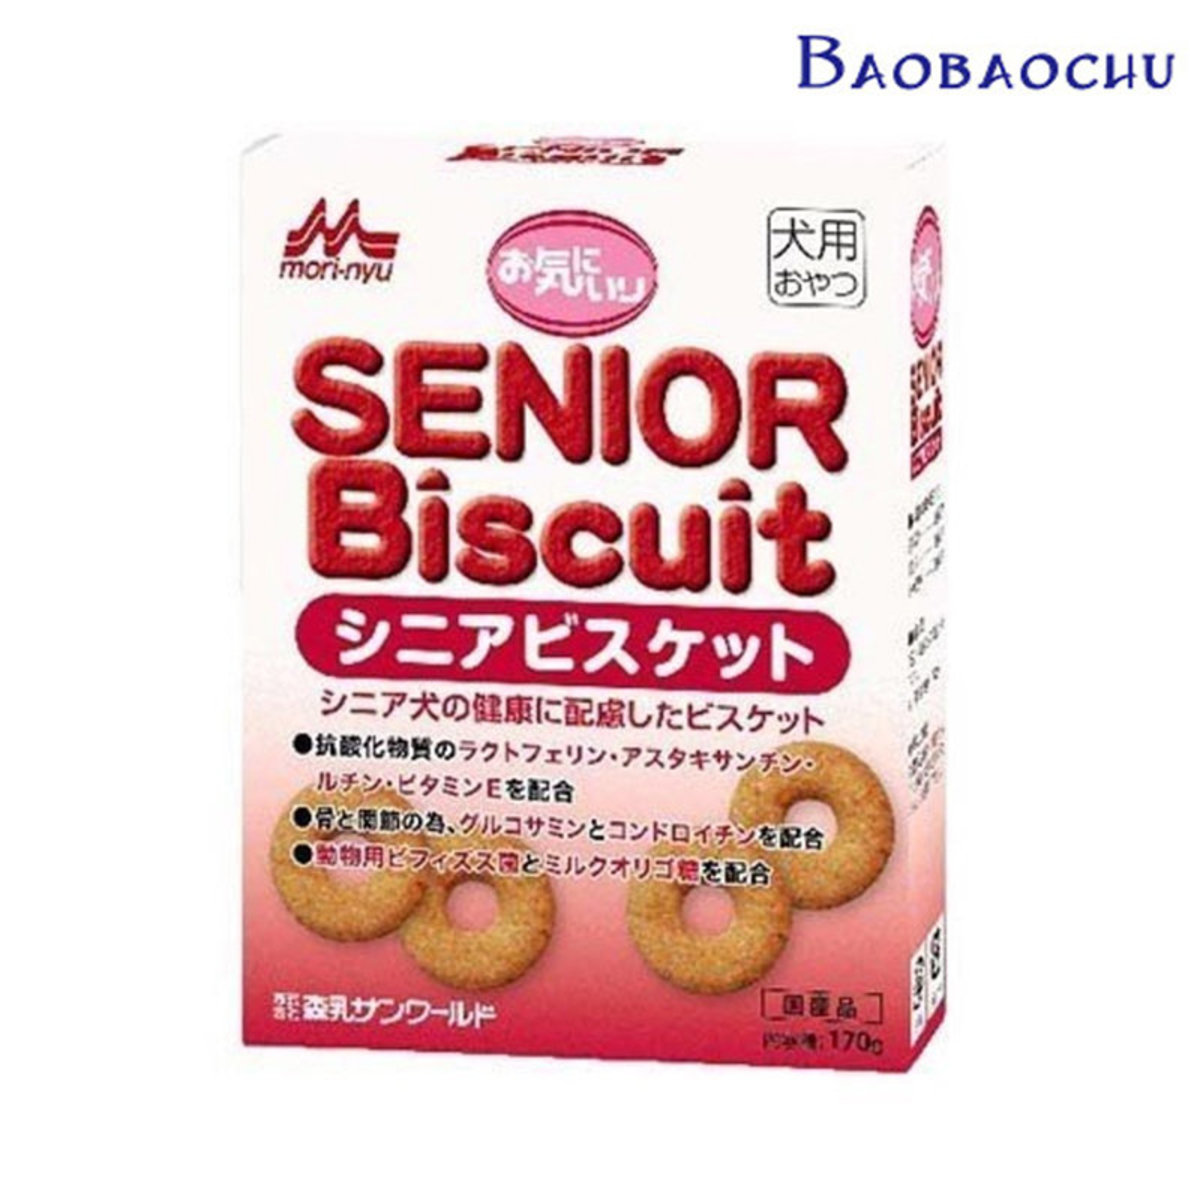 Senior biscuit 170g (MN-4375)